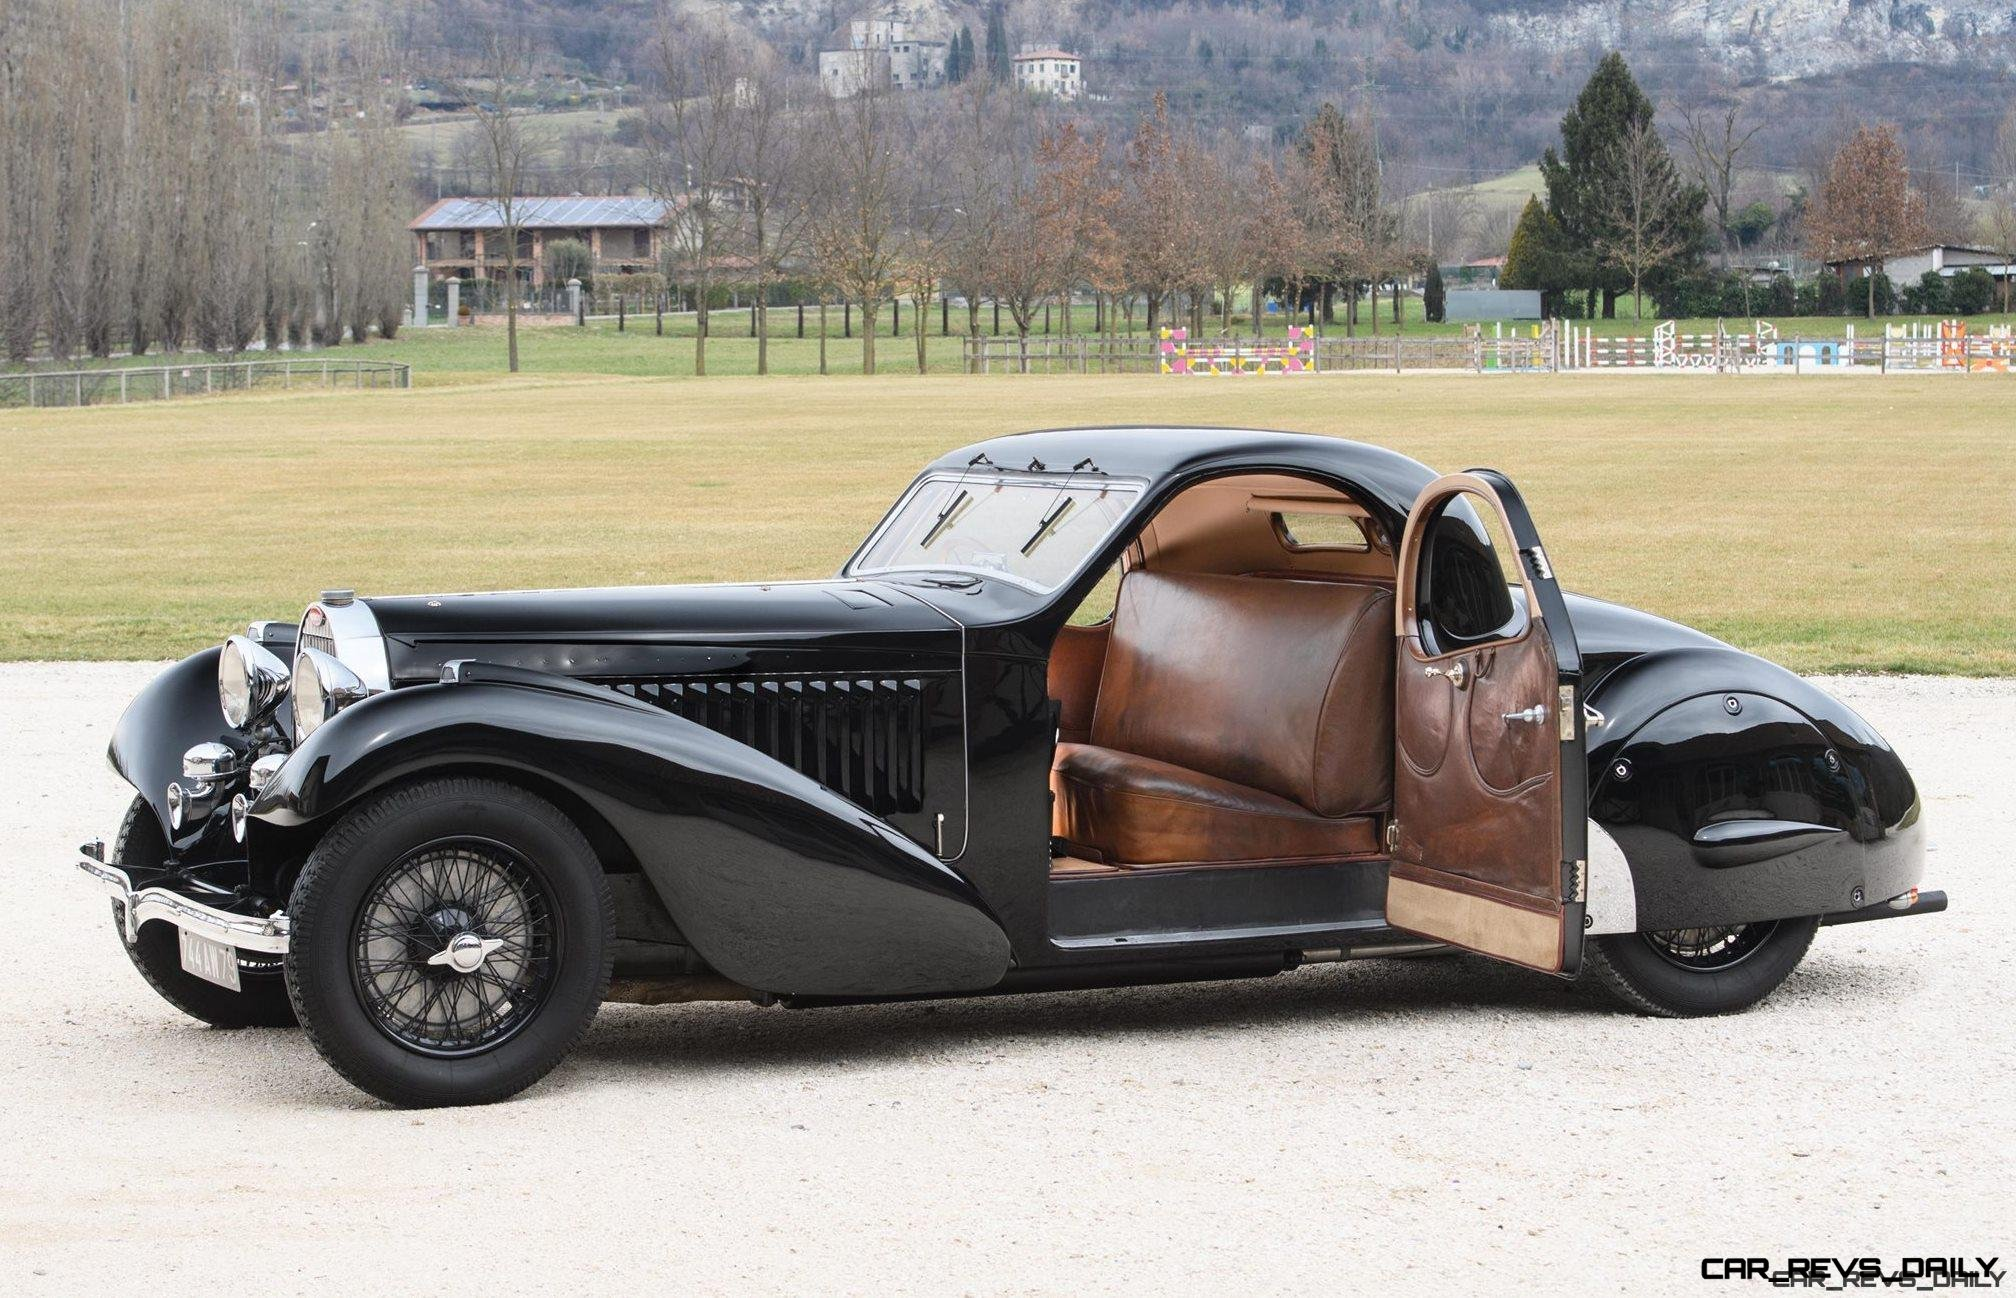 Hall Of Fame 1935 Bugatti Type 57 Atalante Prototype By Carrosserie Bugatti Best Of 2017 Awards Car Revs Daily Com